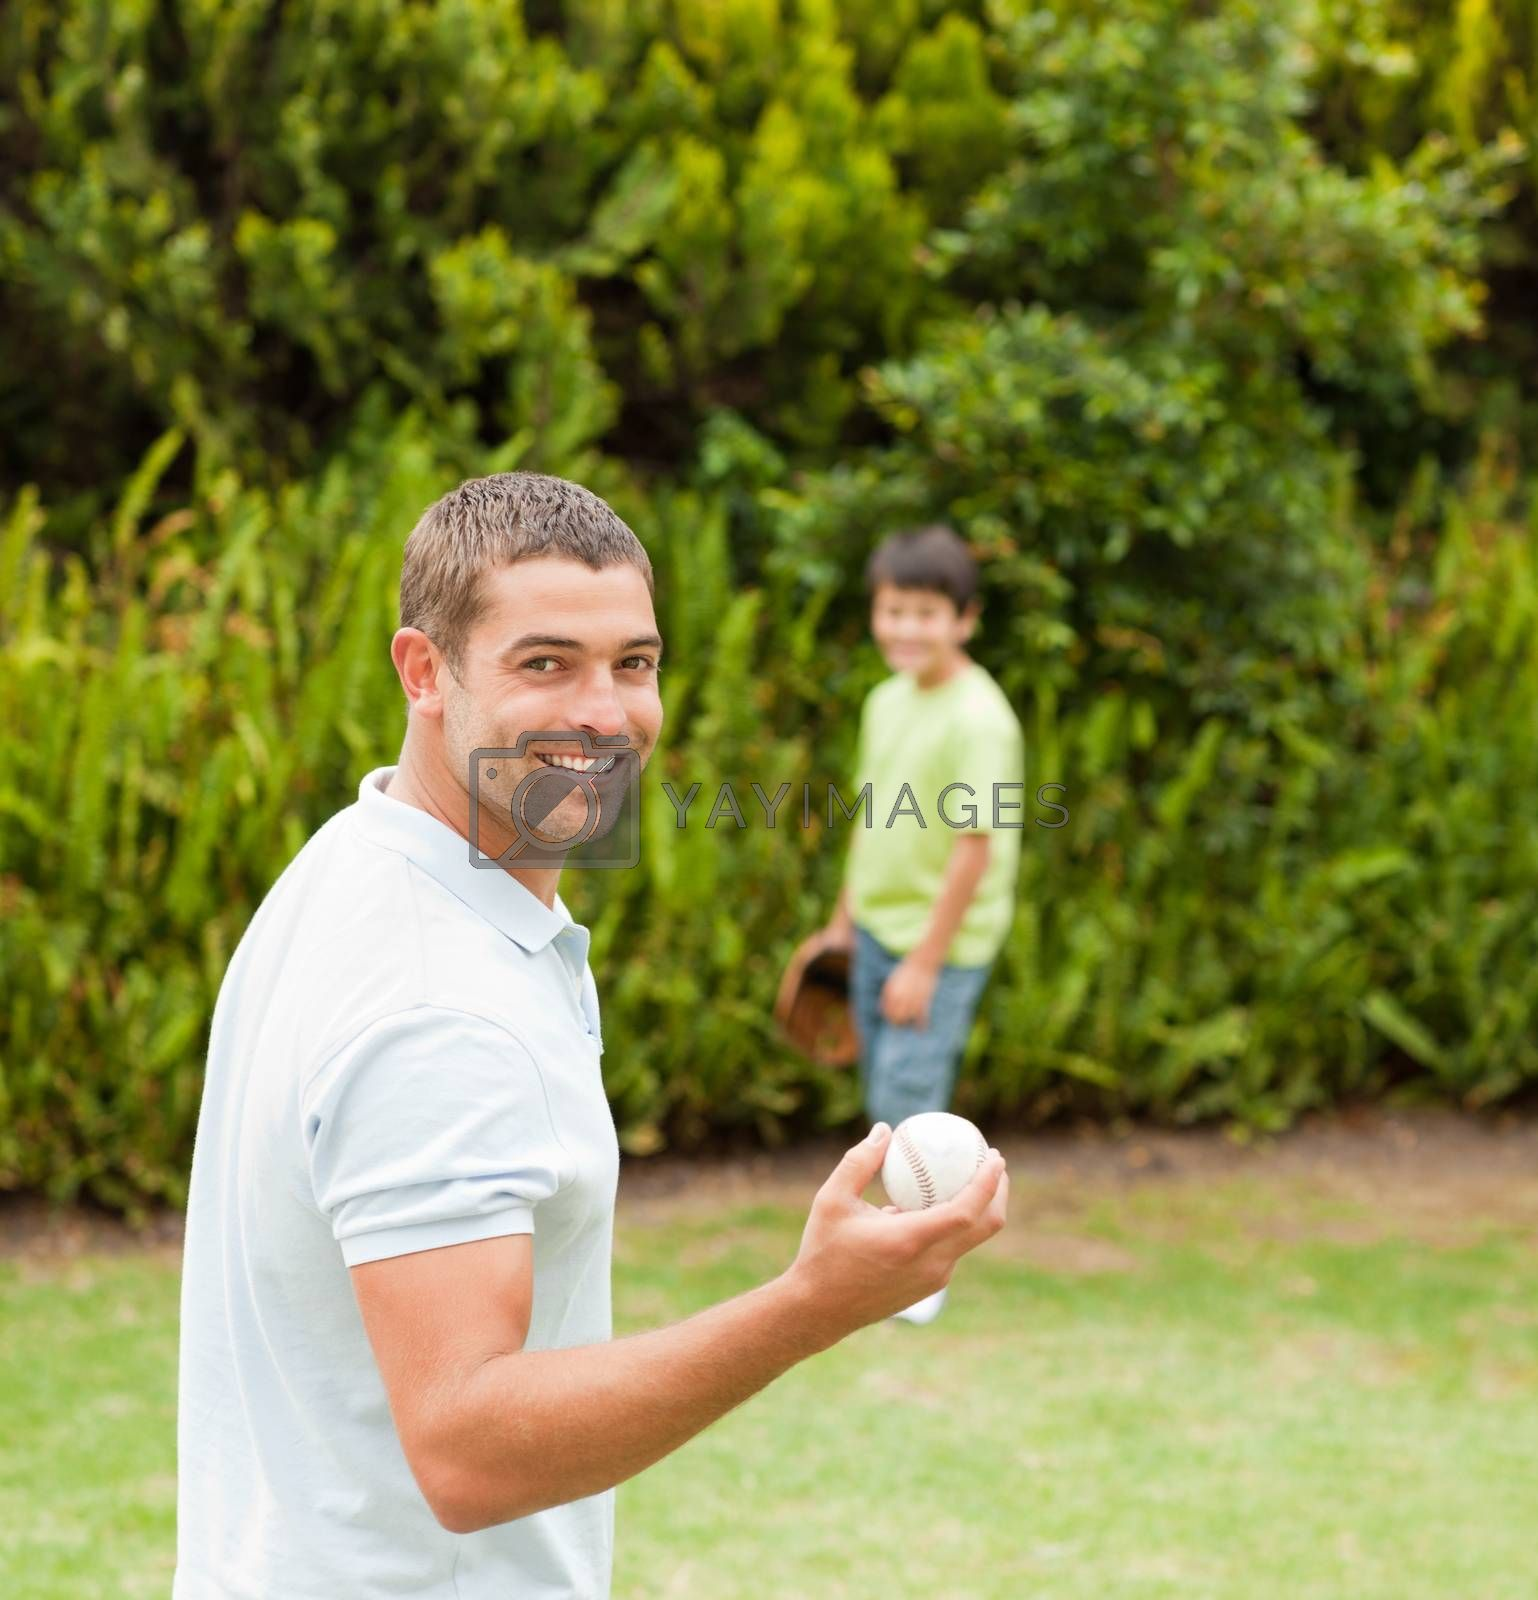 Son playing football with his father